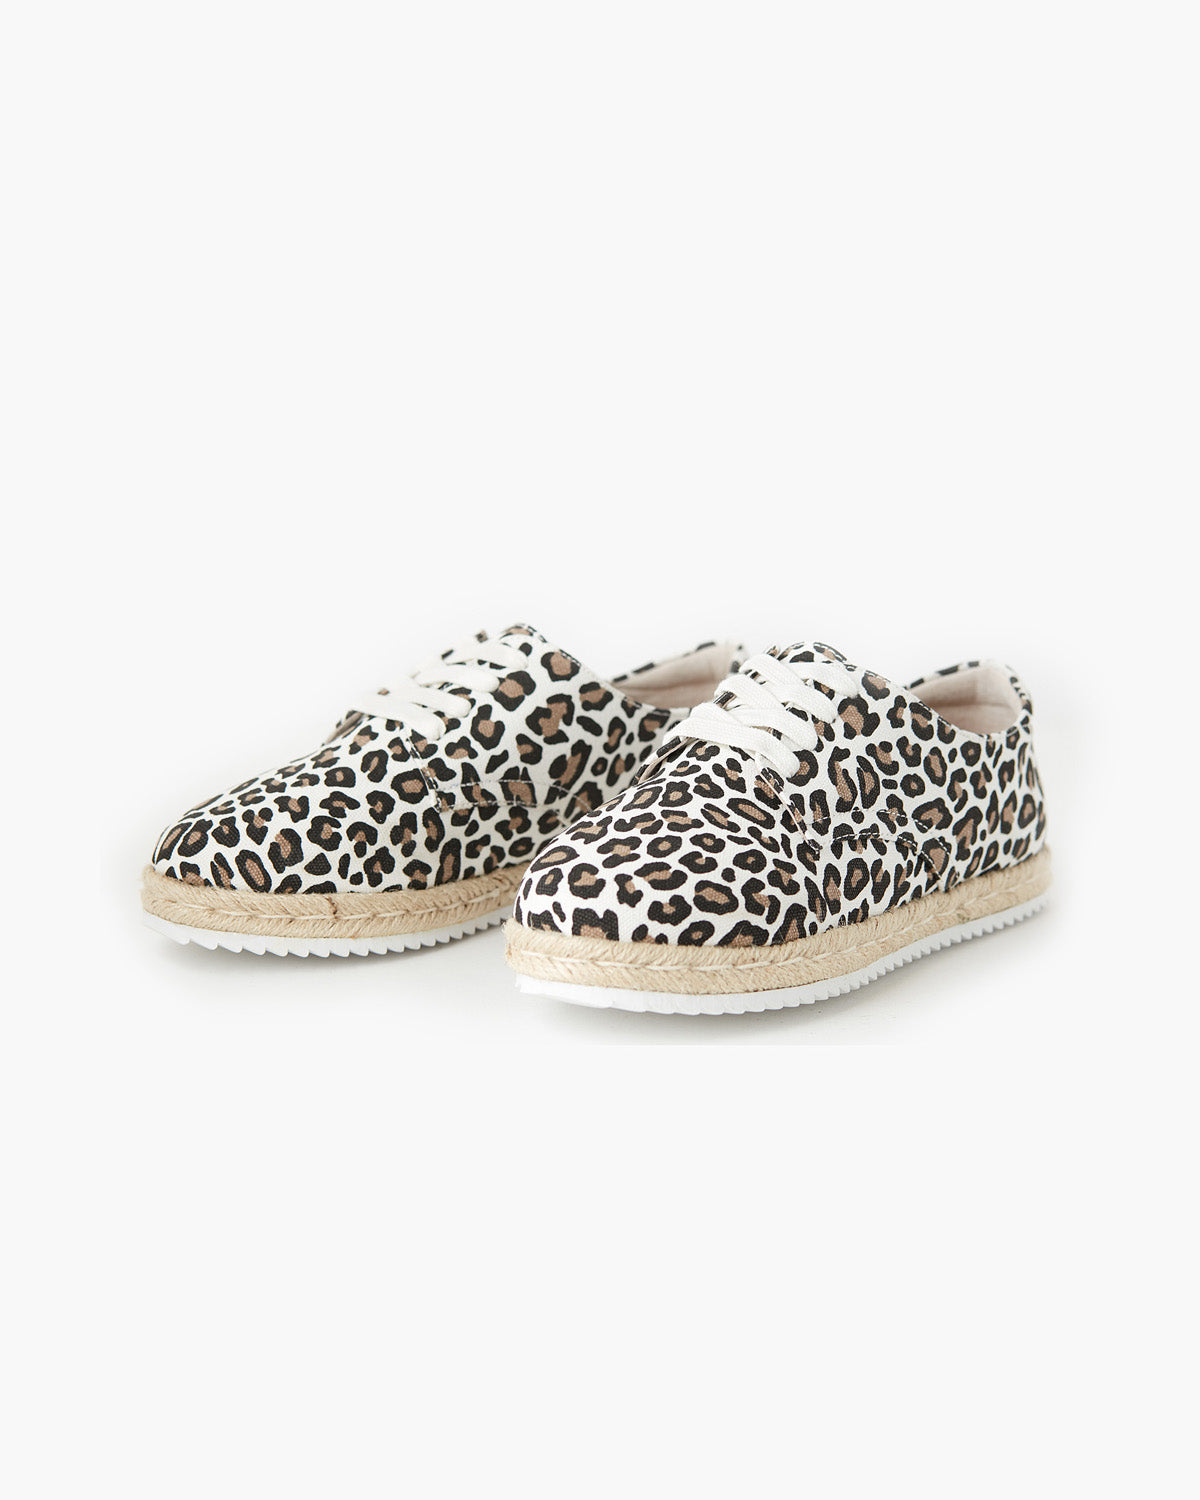 Giselle Canvas Lace Up Espadrille - White Leopard